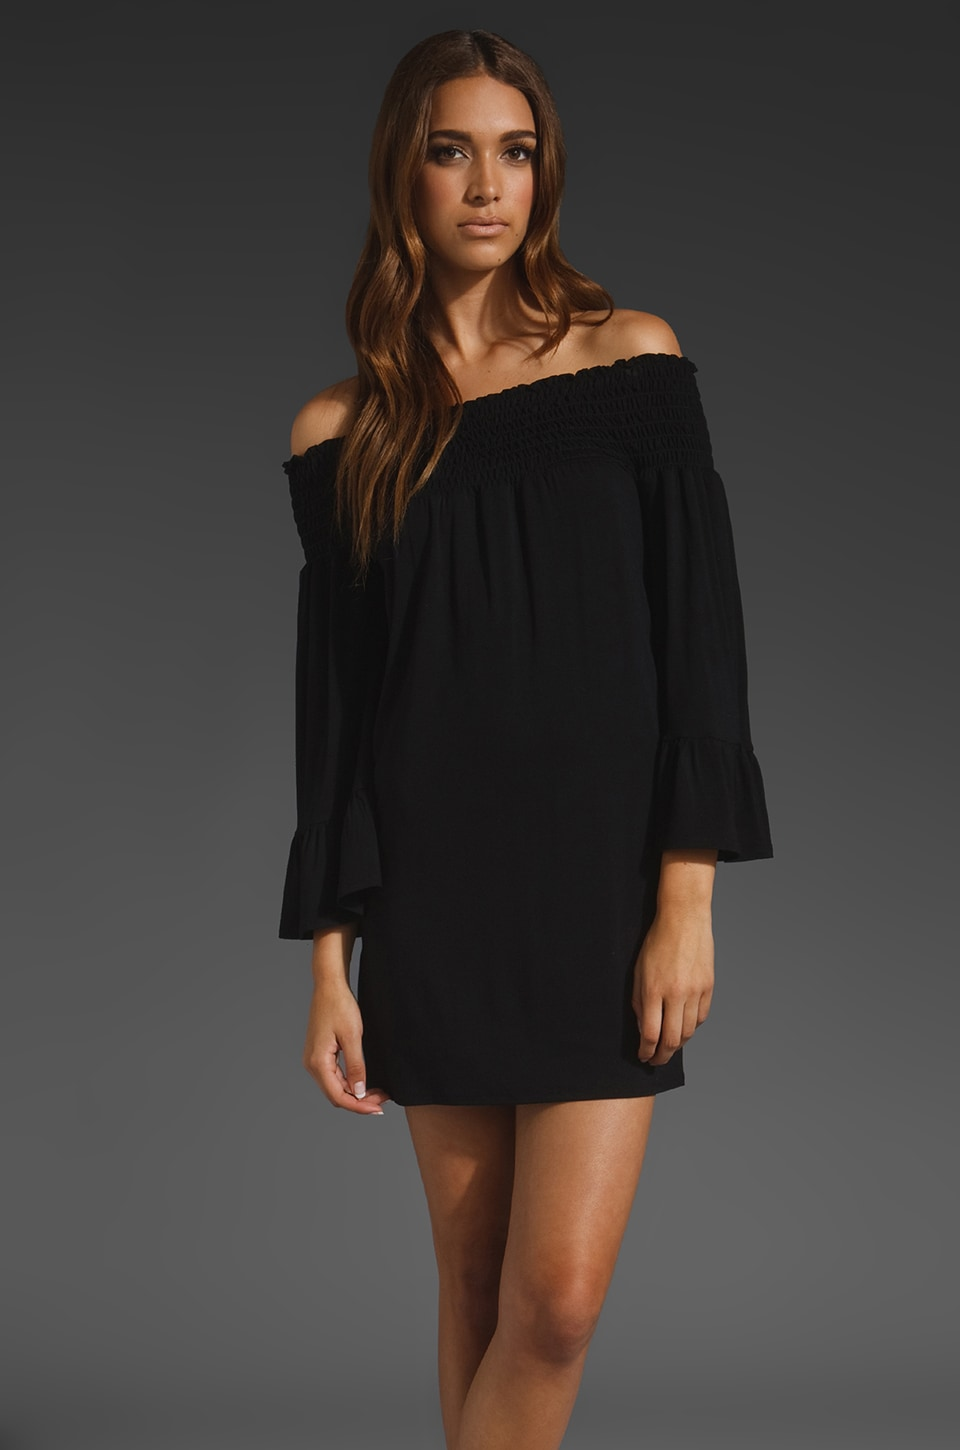 James & Joy Angella Off the Shoulder Dress in Black